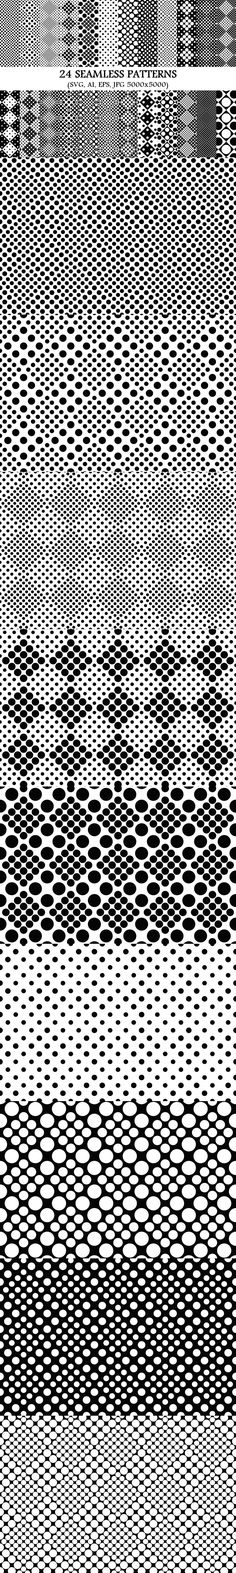 24 Seamless Dot Patterns #BackgroundGraphics #CheapVectorPattern #AbstractDesign #seamlesspattern #seamlesspatterns #BackgroundCollection #PremiumVector #BackgroundDesign #purplebackgrounds #BackgroundBundle #BackgroundCollection #GeometricPattern #PremiumVectors #mandalabackgrounds #DiscountPatterns #seamlesspattern #mandala #MandalaArt #floralgraphics Polka Dot Background, Geometric Background, Background Patterns, Dot Patterns, Graphic Patterns, Vector Pattern, Pattern Design, Monochrome Pattern, Pattern And Decoration